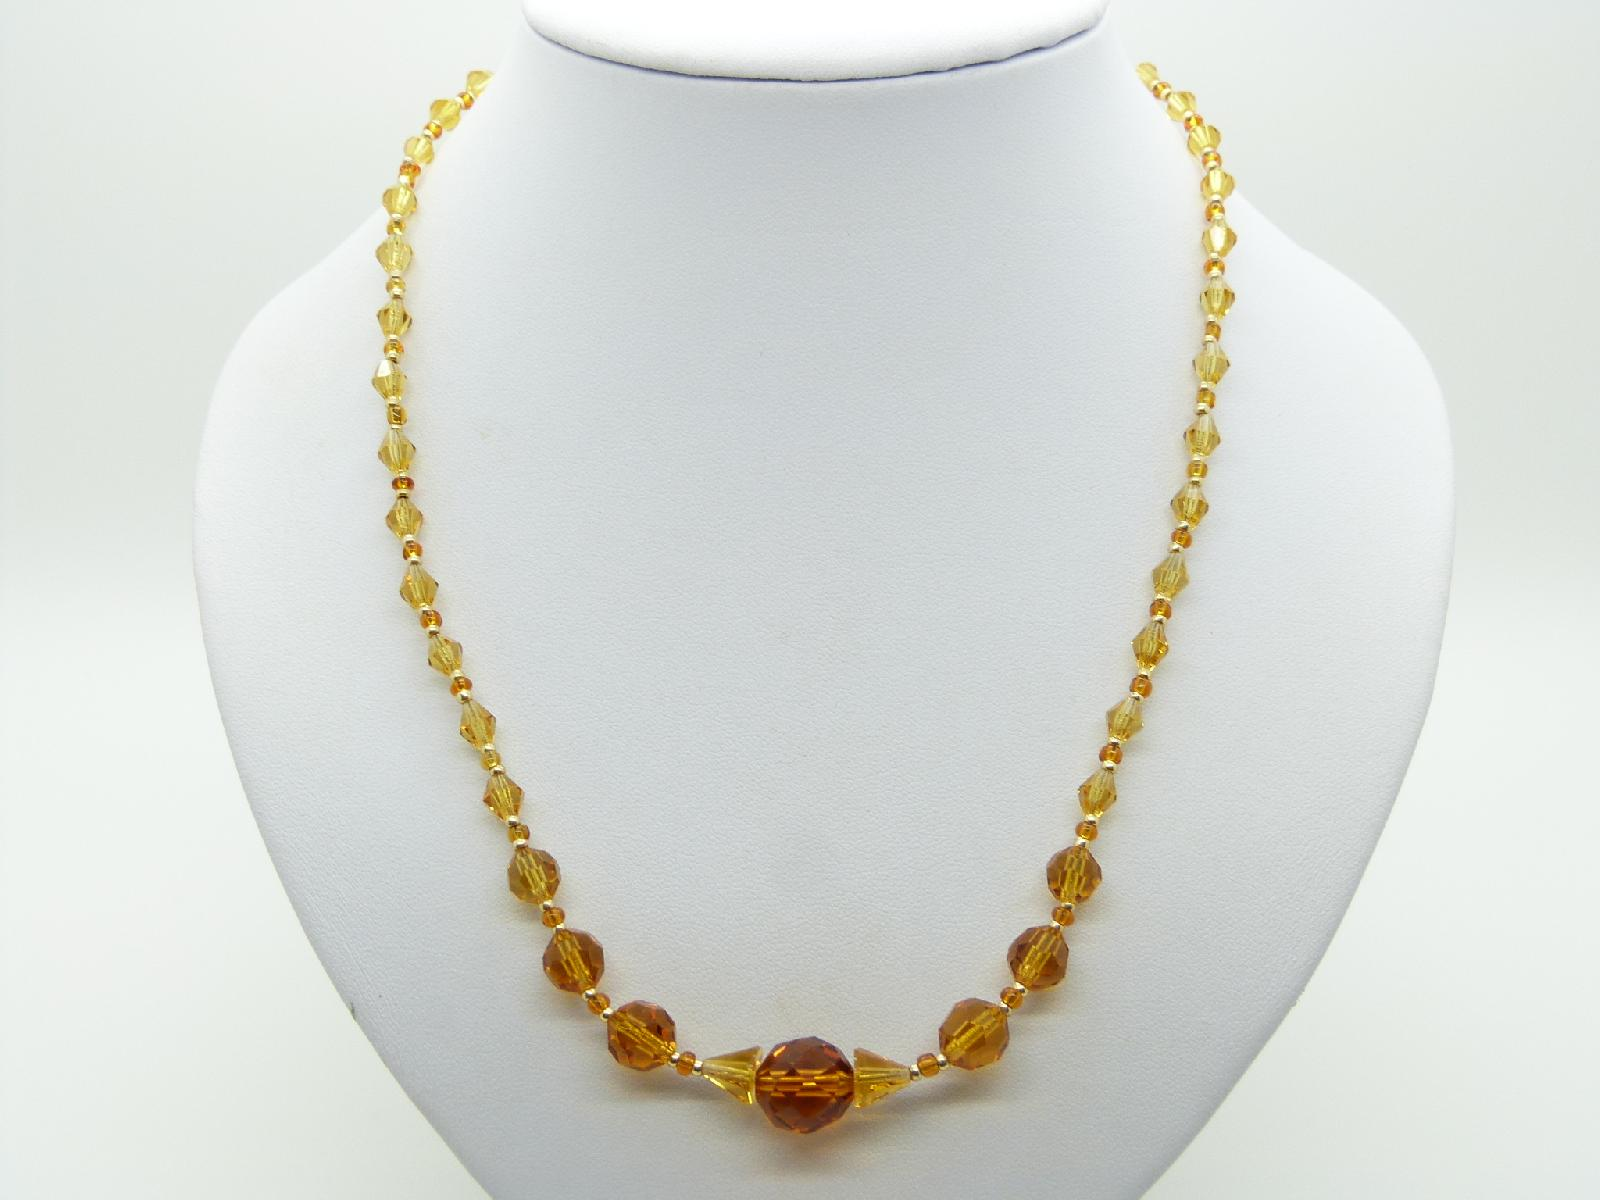 Vintage 30s Pretty Citrine Coloured Crystal Glass Bead Necklace 52cms